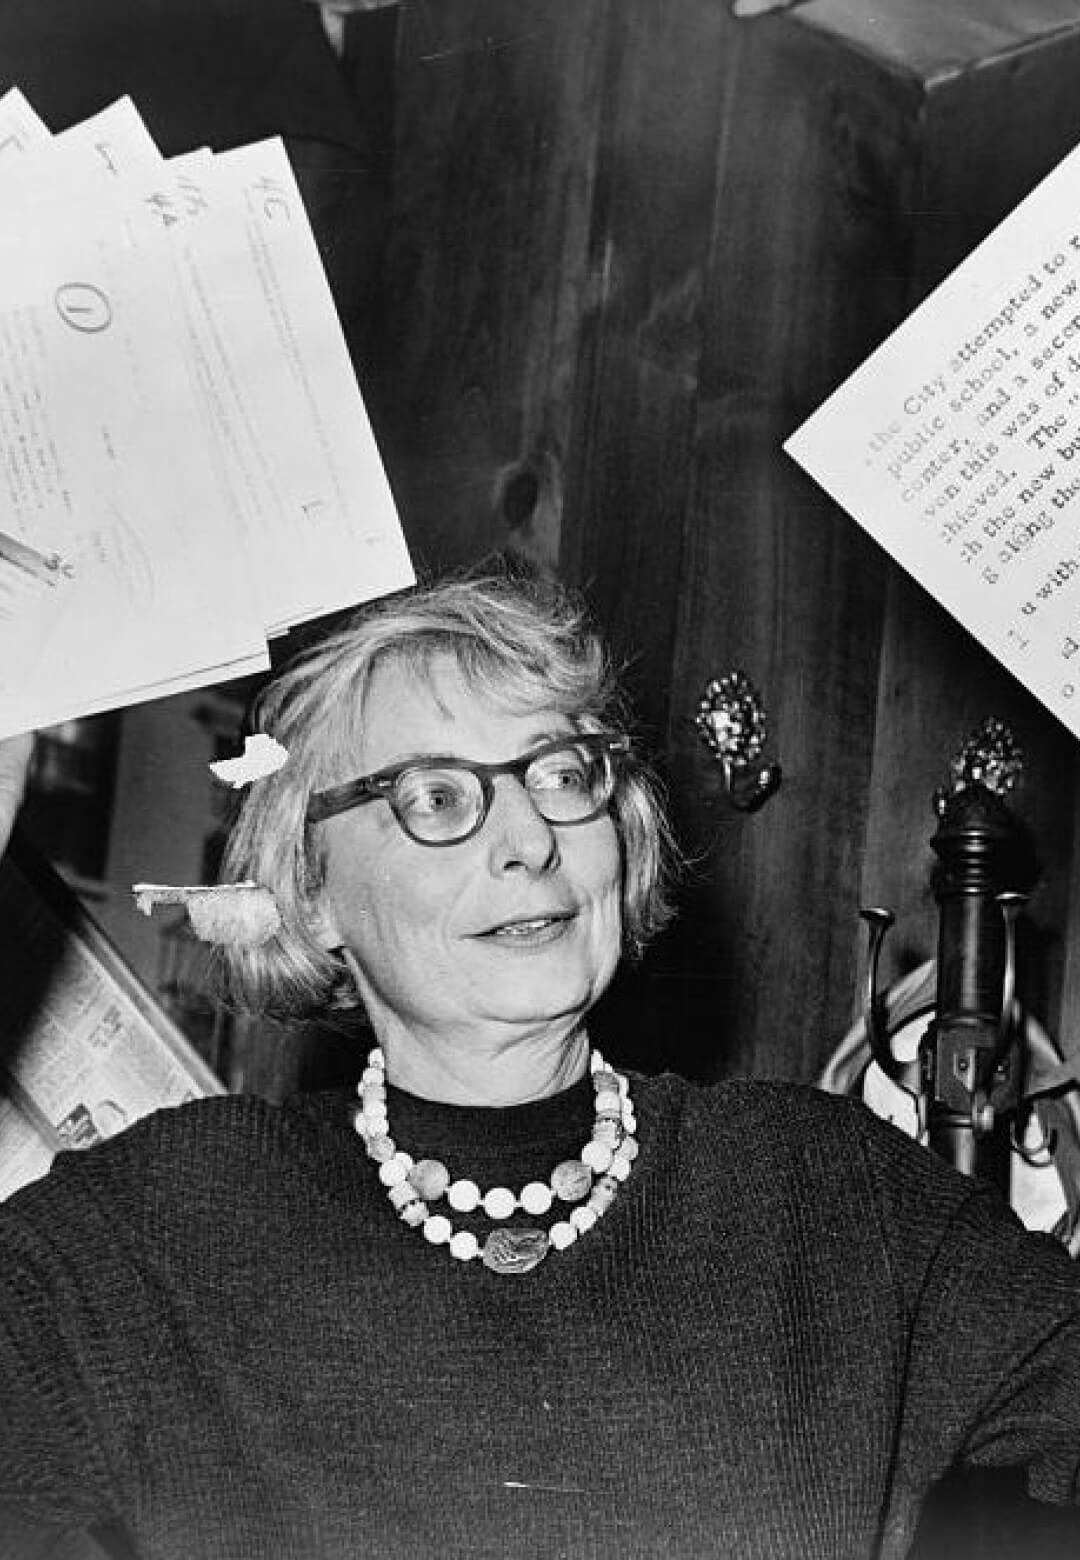 Jane Jacobs, chairman of the committee to save the West Village holds up documentary evidence at press conference at Lions Head Restaurant at Hudson & Charles Sts. (1961) | Jane Jacobs | STIRworld